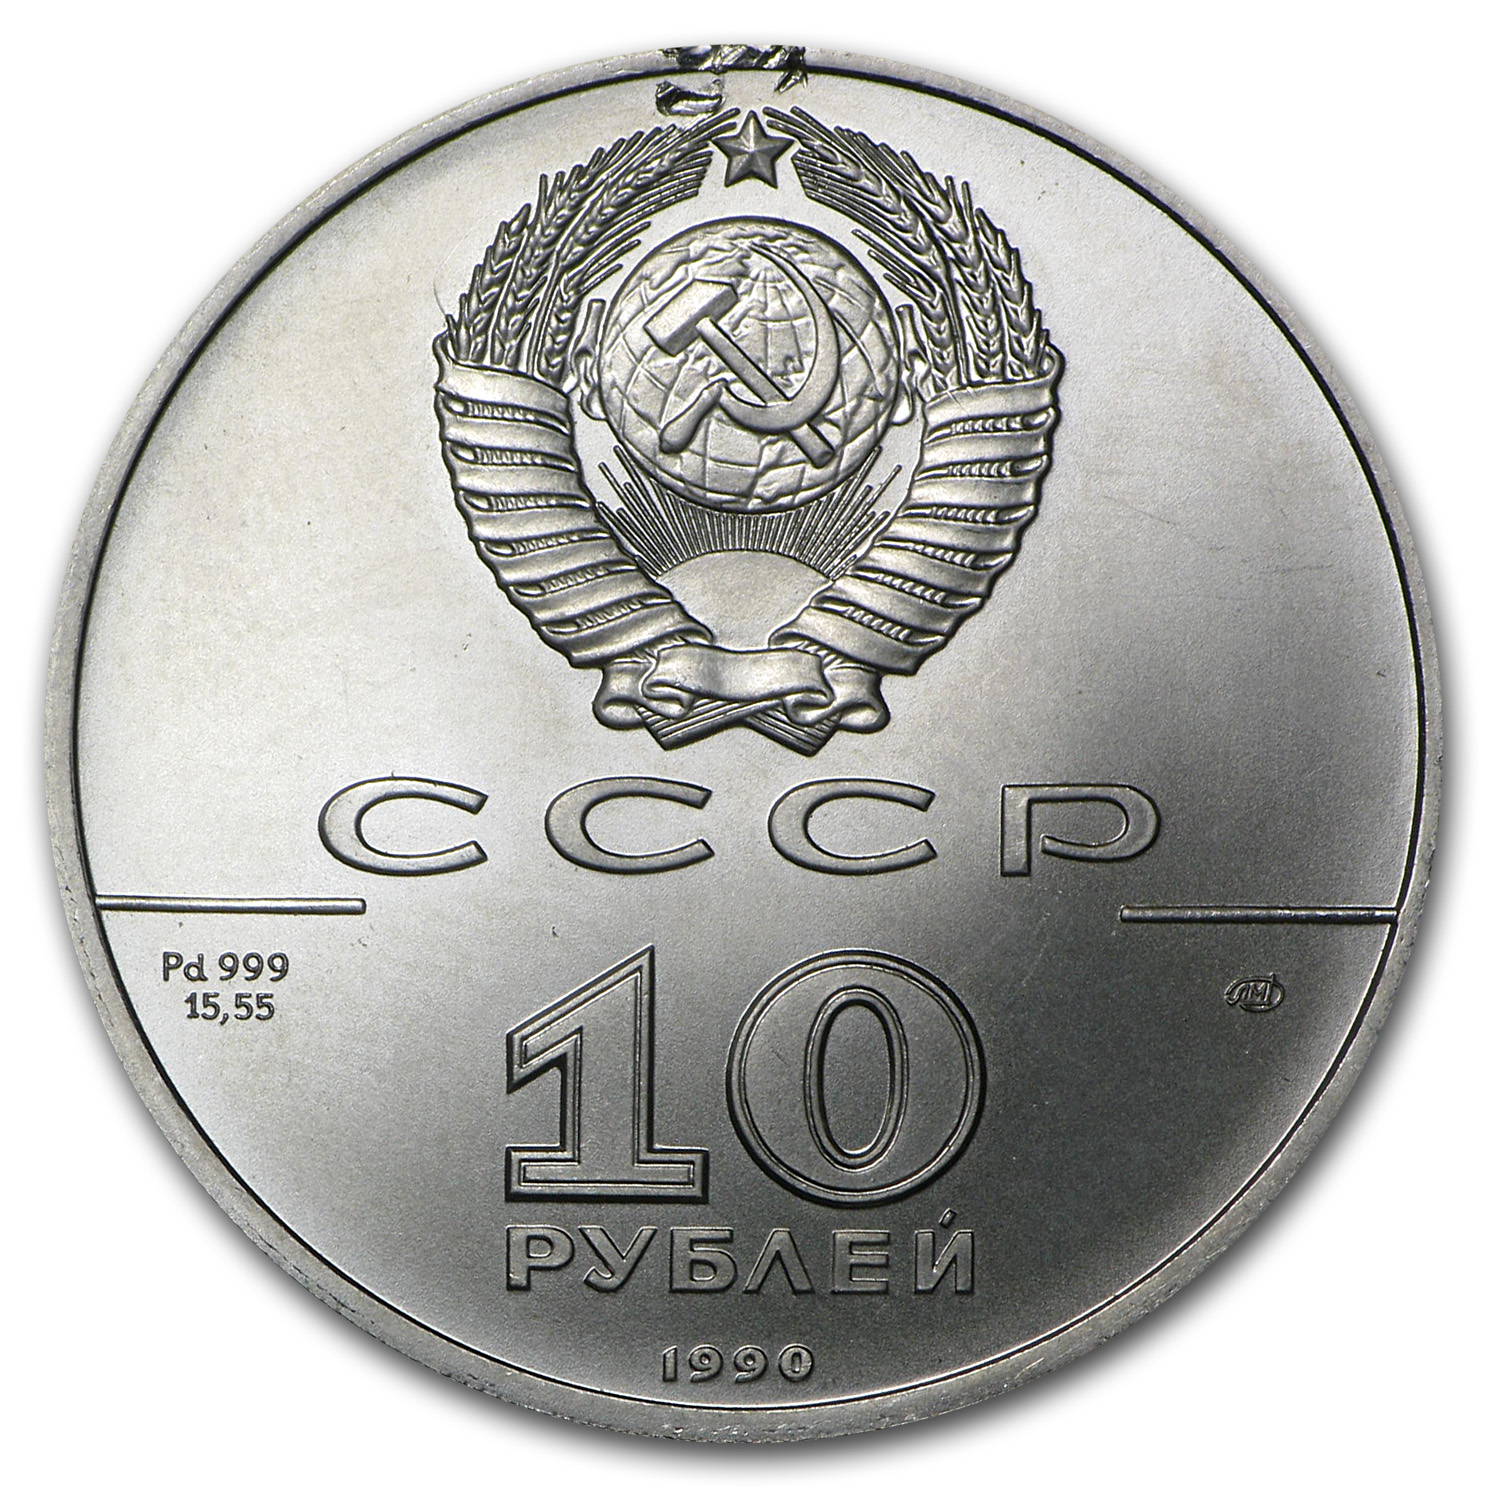 1/2 oz Palladium Russian Ballerina (Scruffy)